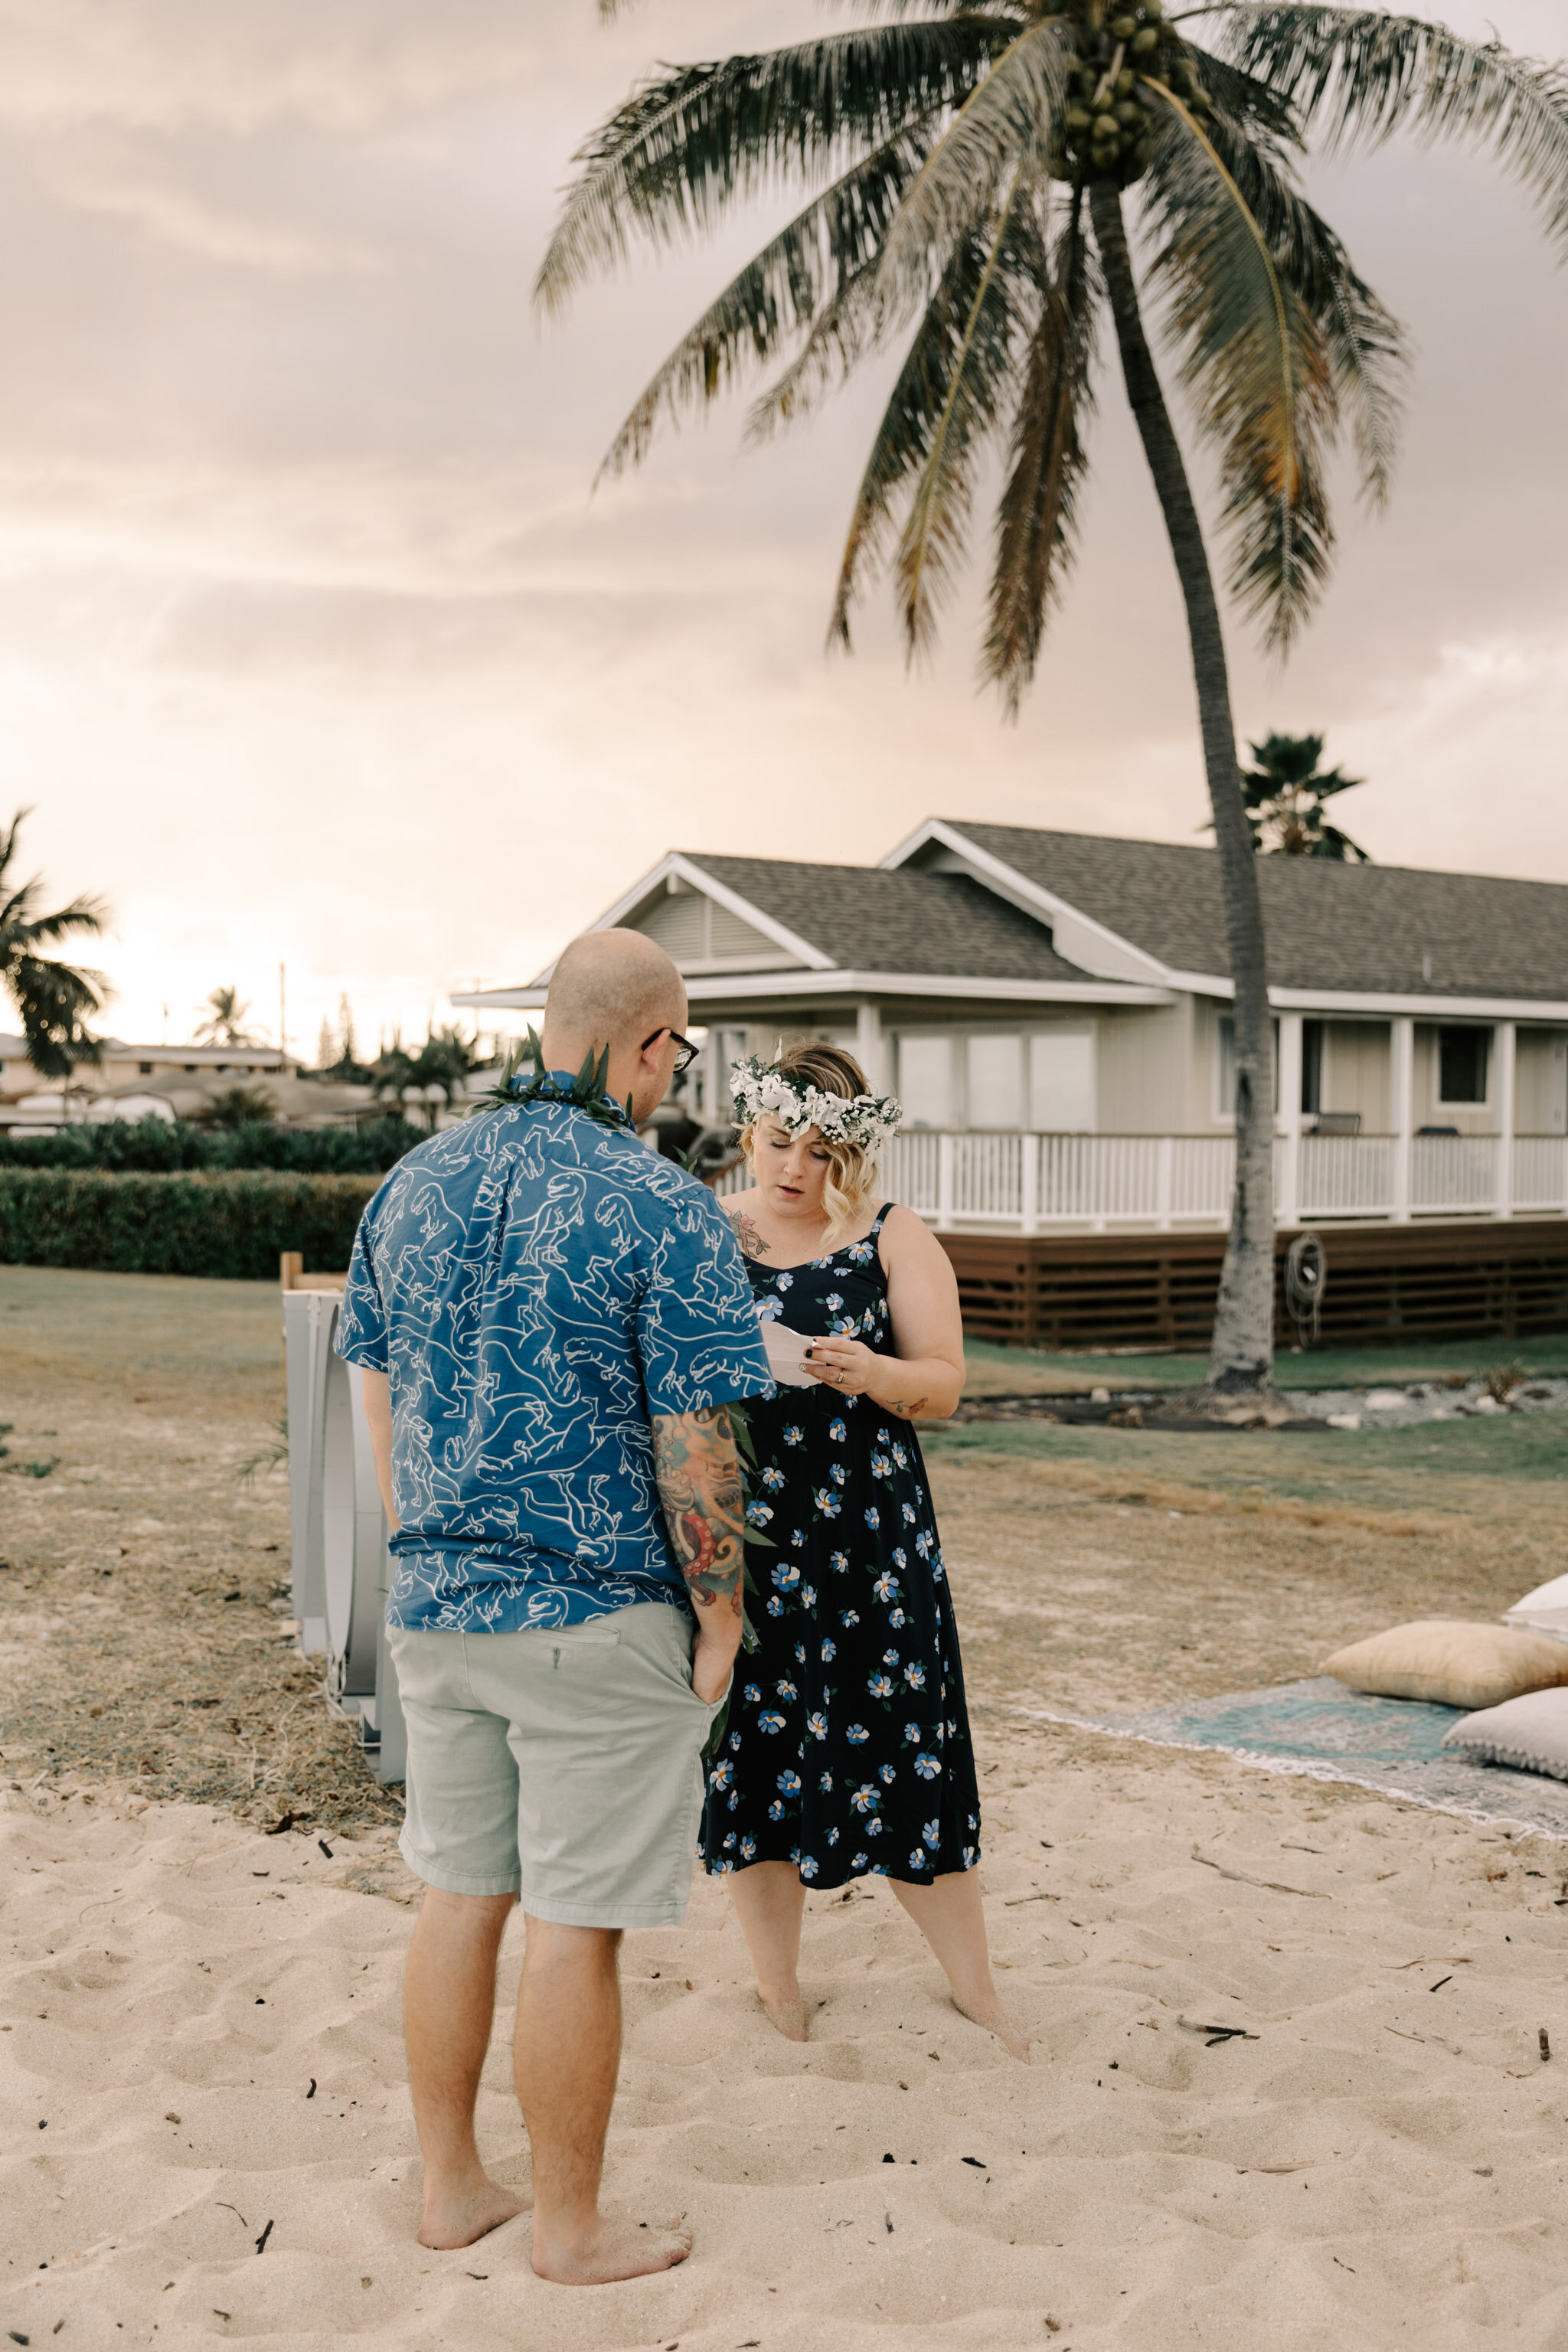 Aloha Picnics Puuloa Beach Park Hawaii Vow Renewal By Oahu Wedding Photographer Desiree Leilani